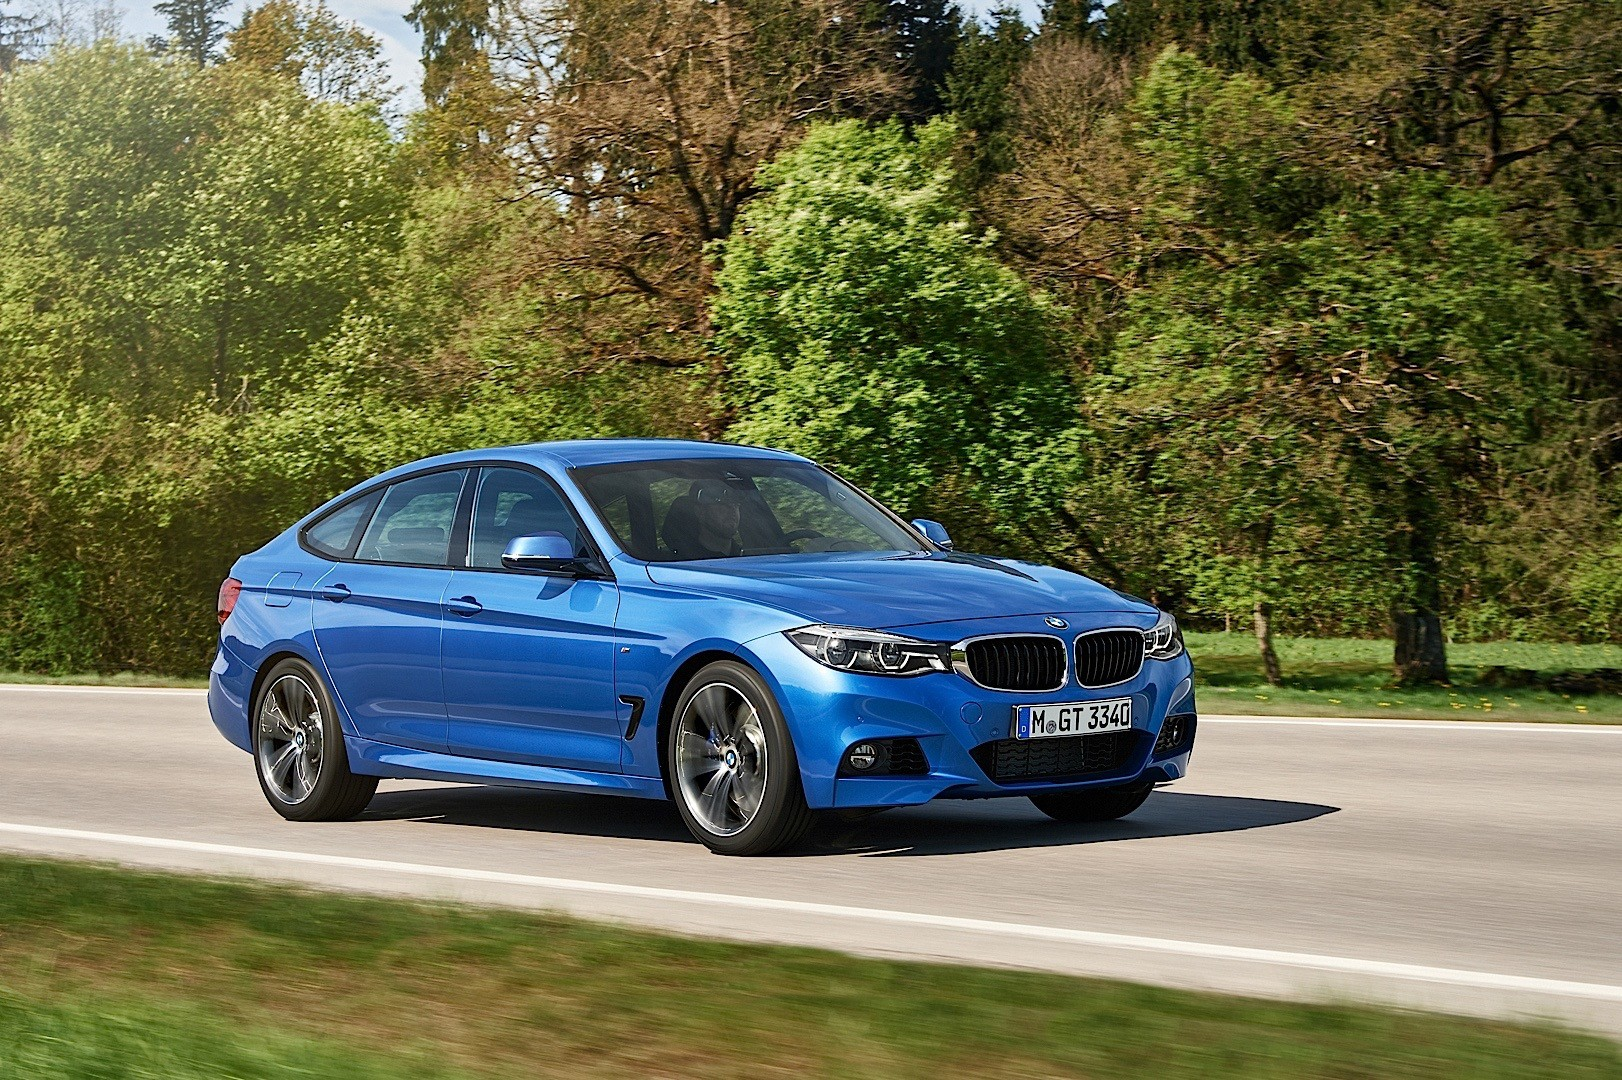 2016 bmw 3 series gran turismo facelift is all things to all families autoevolution. Black Bedroom Furniture Sets. Home Design Ideas